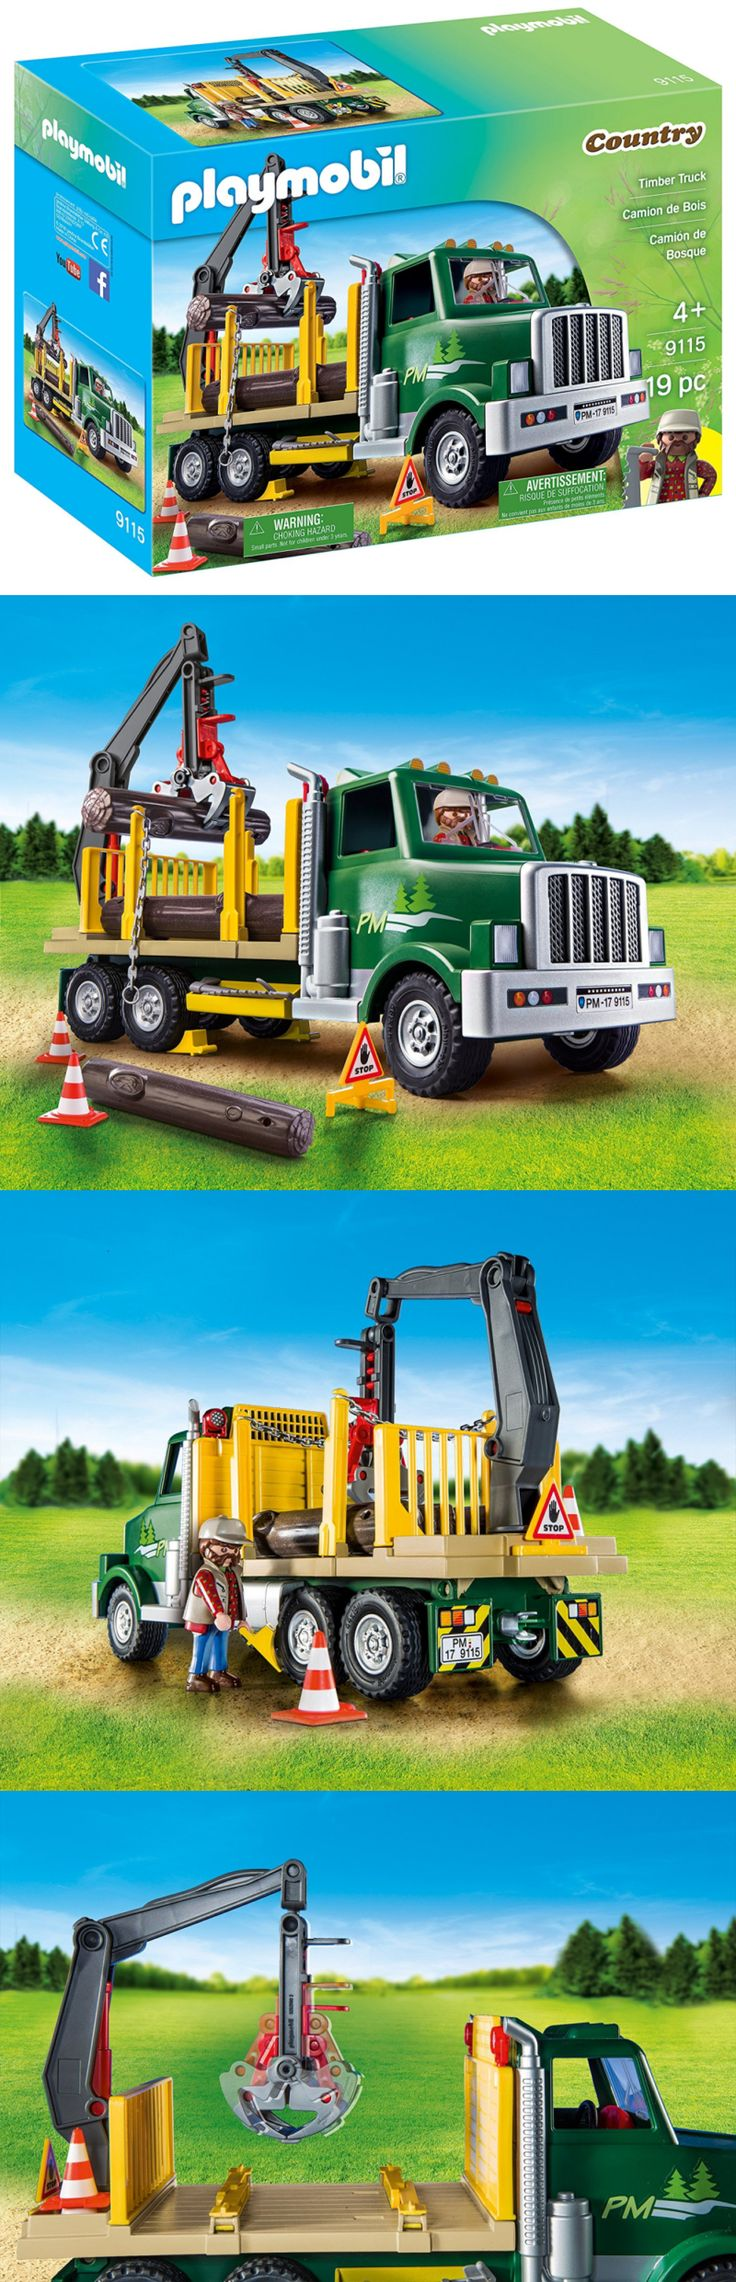 Playmobil 19854: Playmobil Timber Truck Figure Toy Set Crane Play Fun Loading Logs Vehicle Kids -> BUY IT NOW ONLY: $33.35 on eBay!